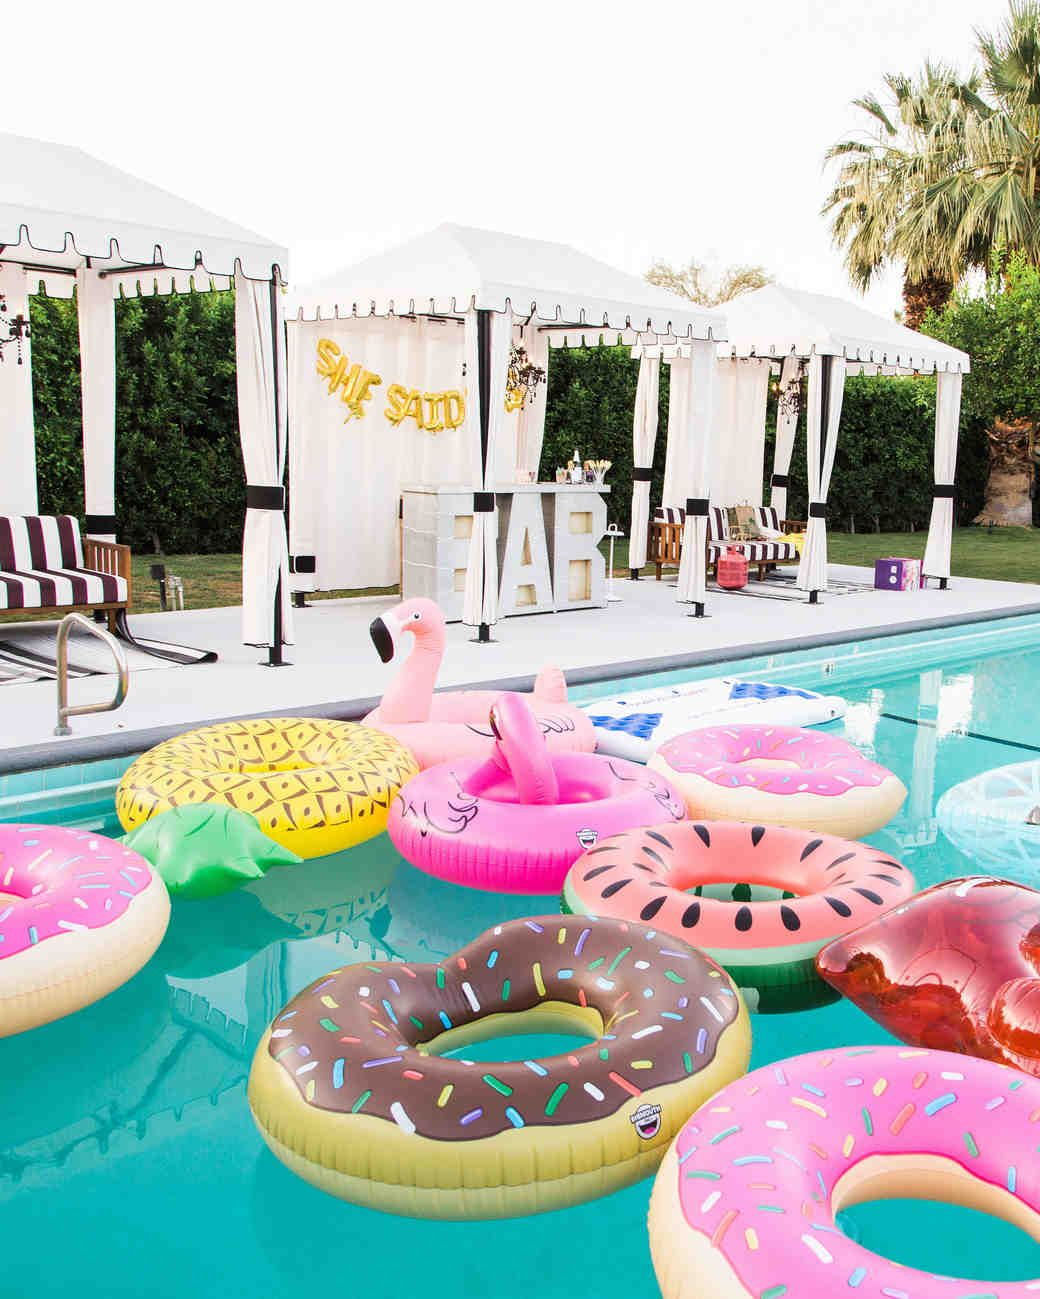 Creative Bachelorette Party Decoration Ideas Bachelorette Party Weekend Pool Birthday Party Summer Pool Party